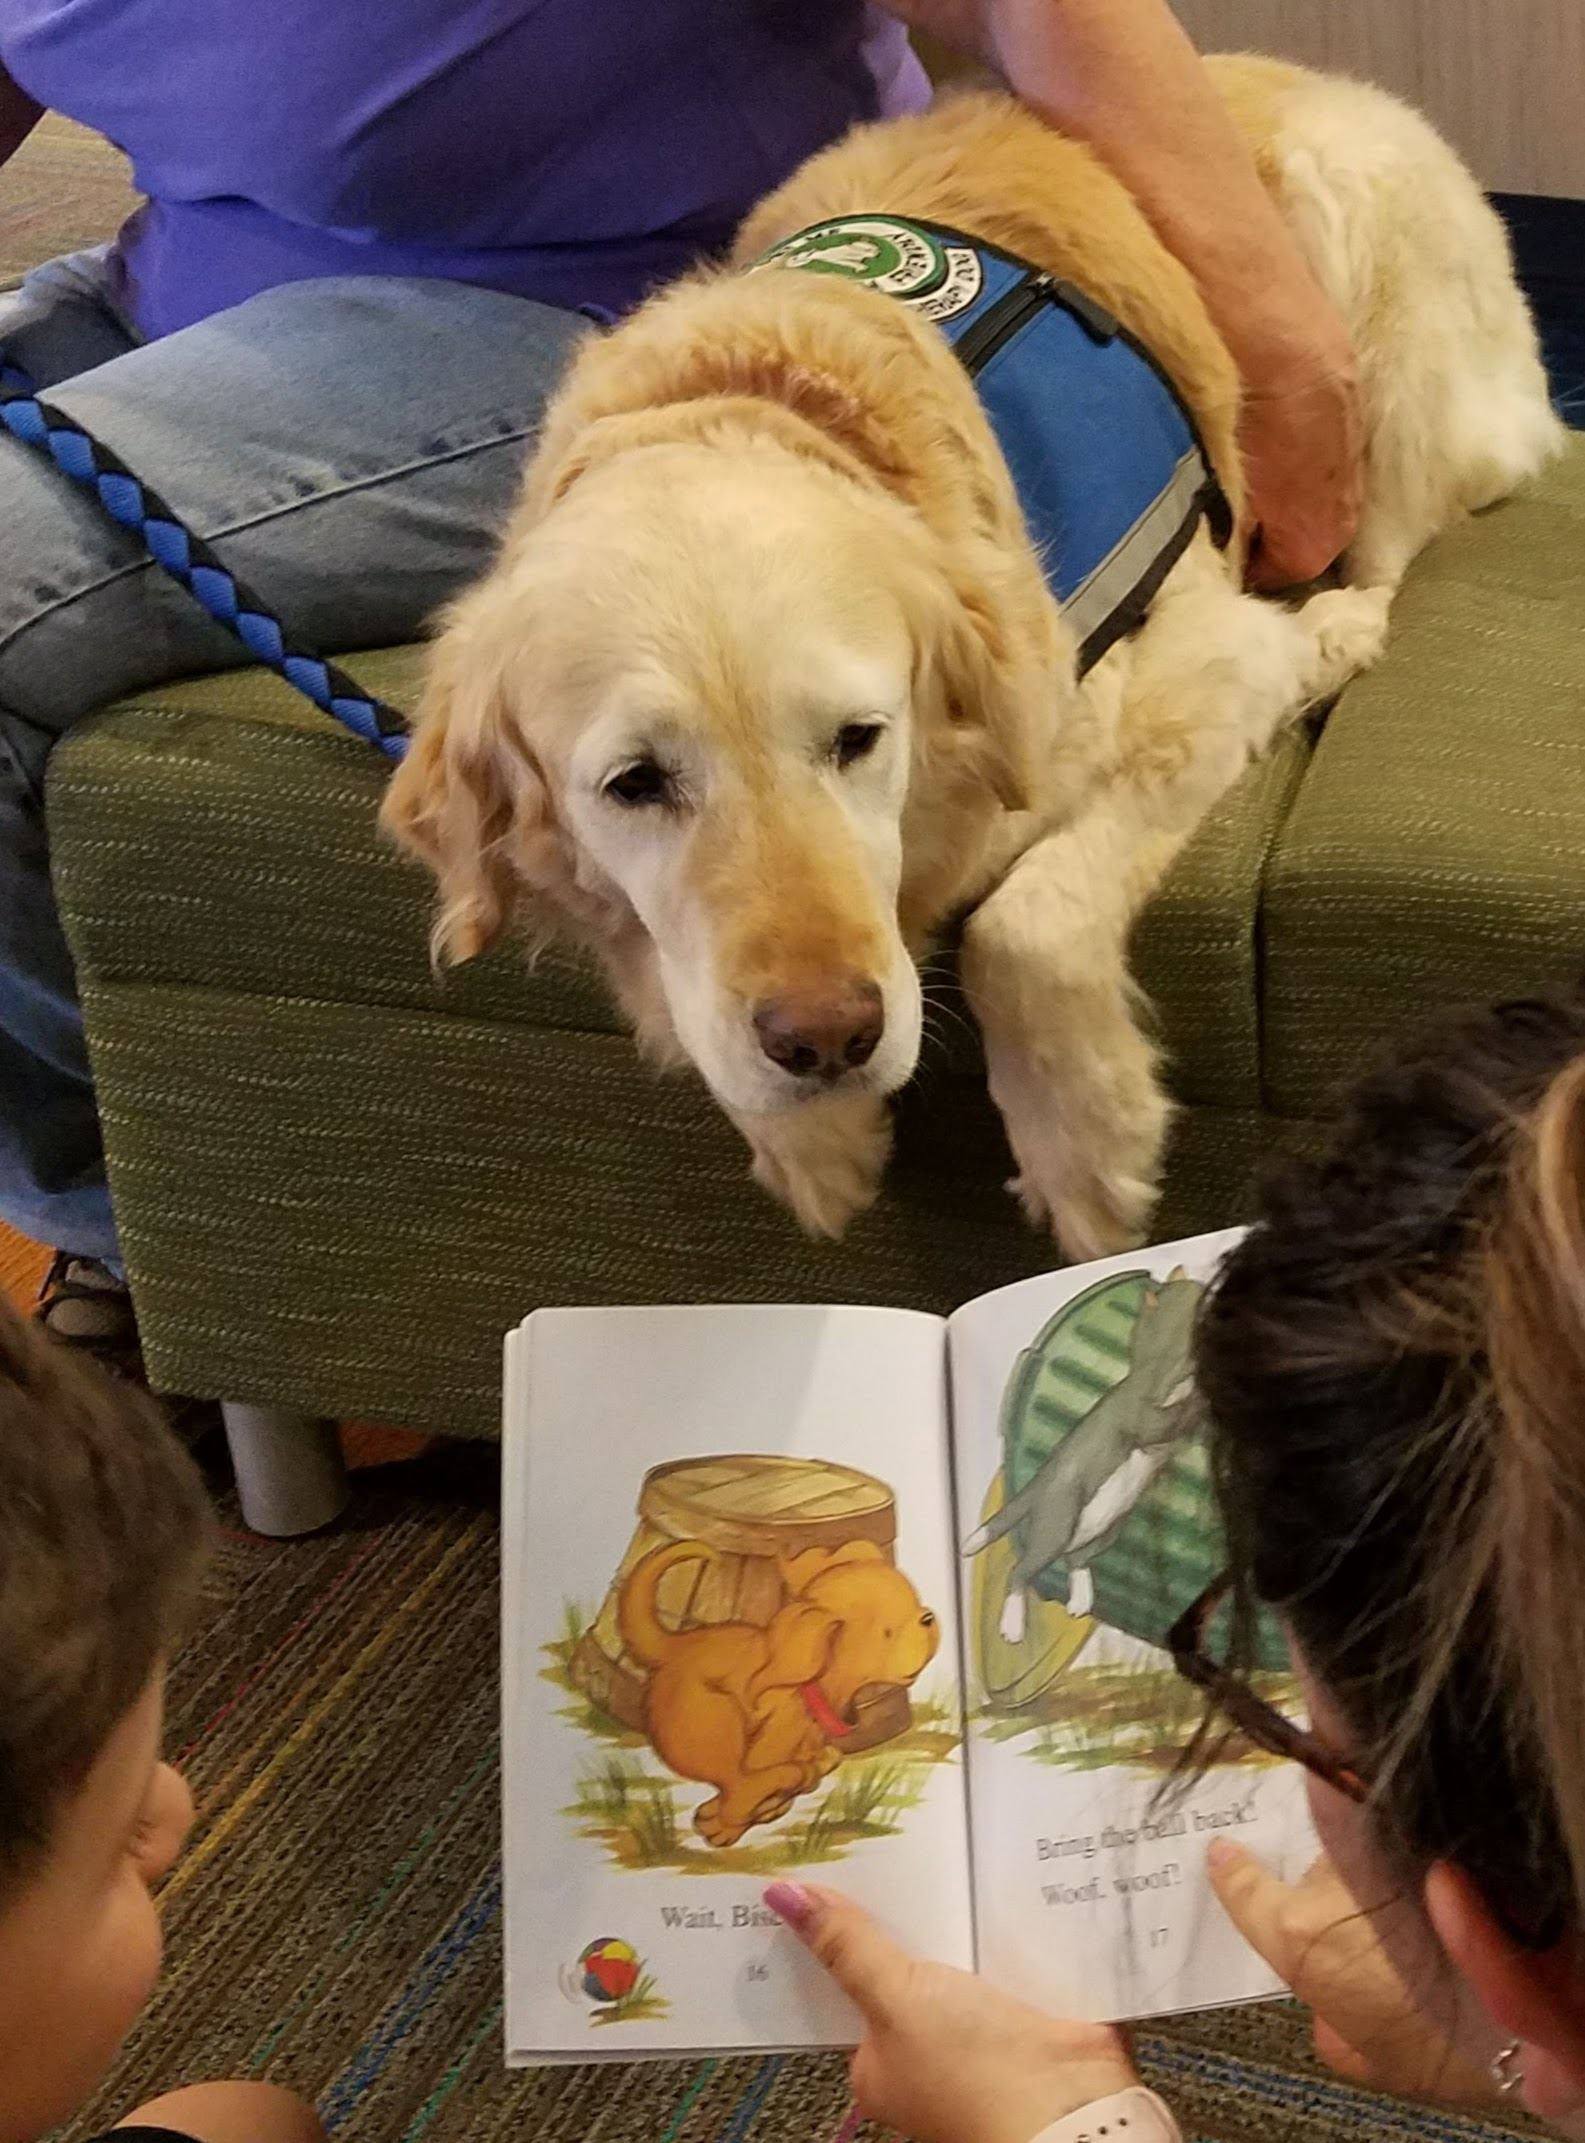 Golden Retriever looks on as boy reads with mother's help